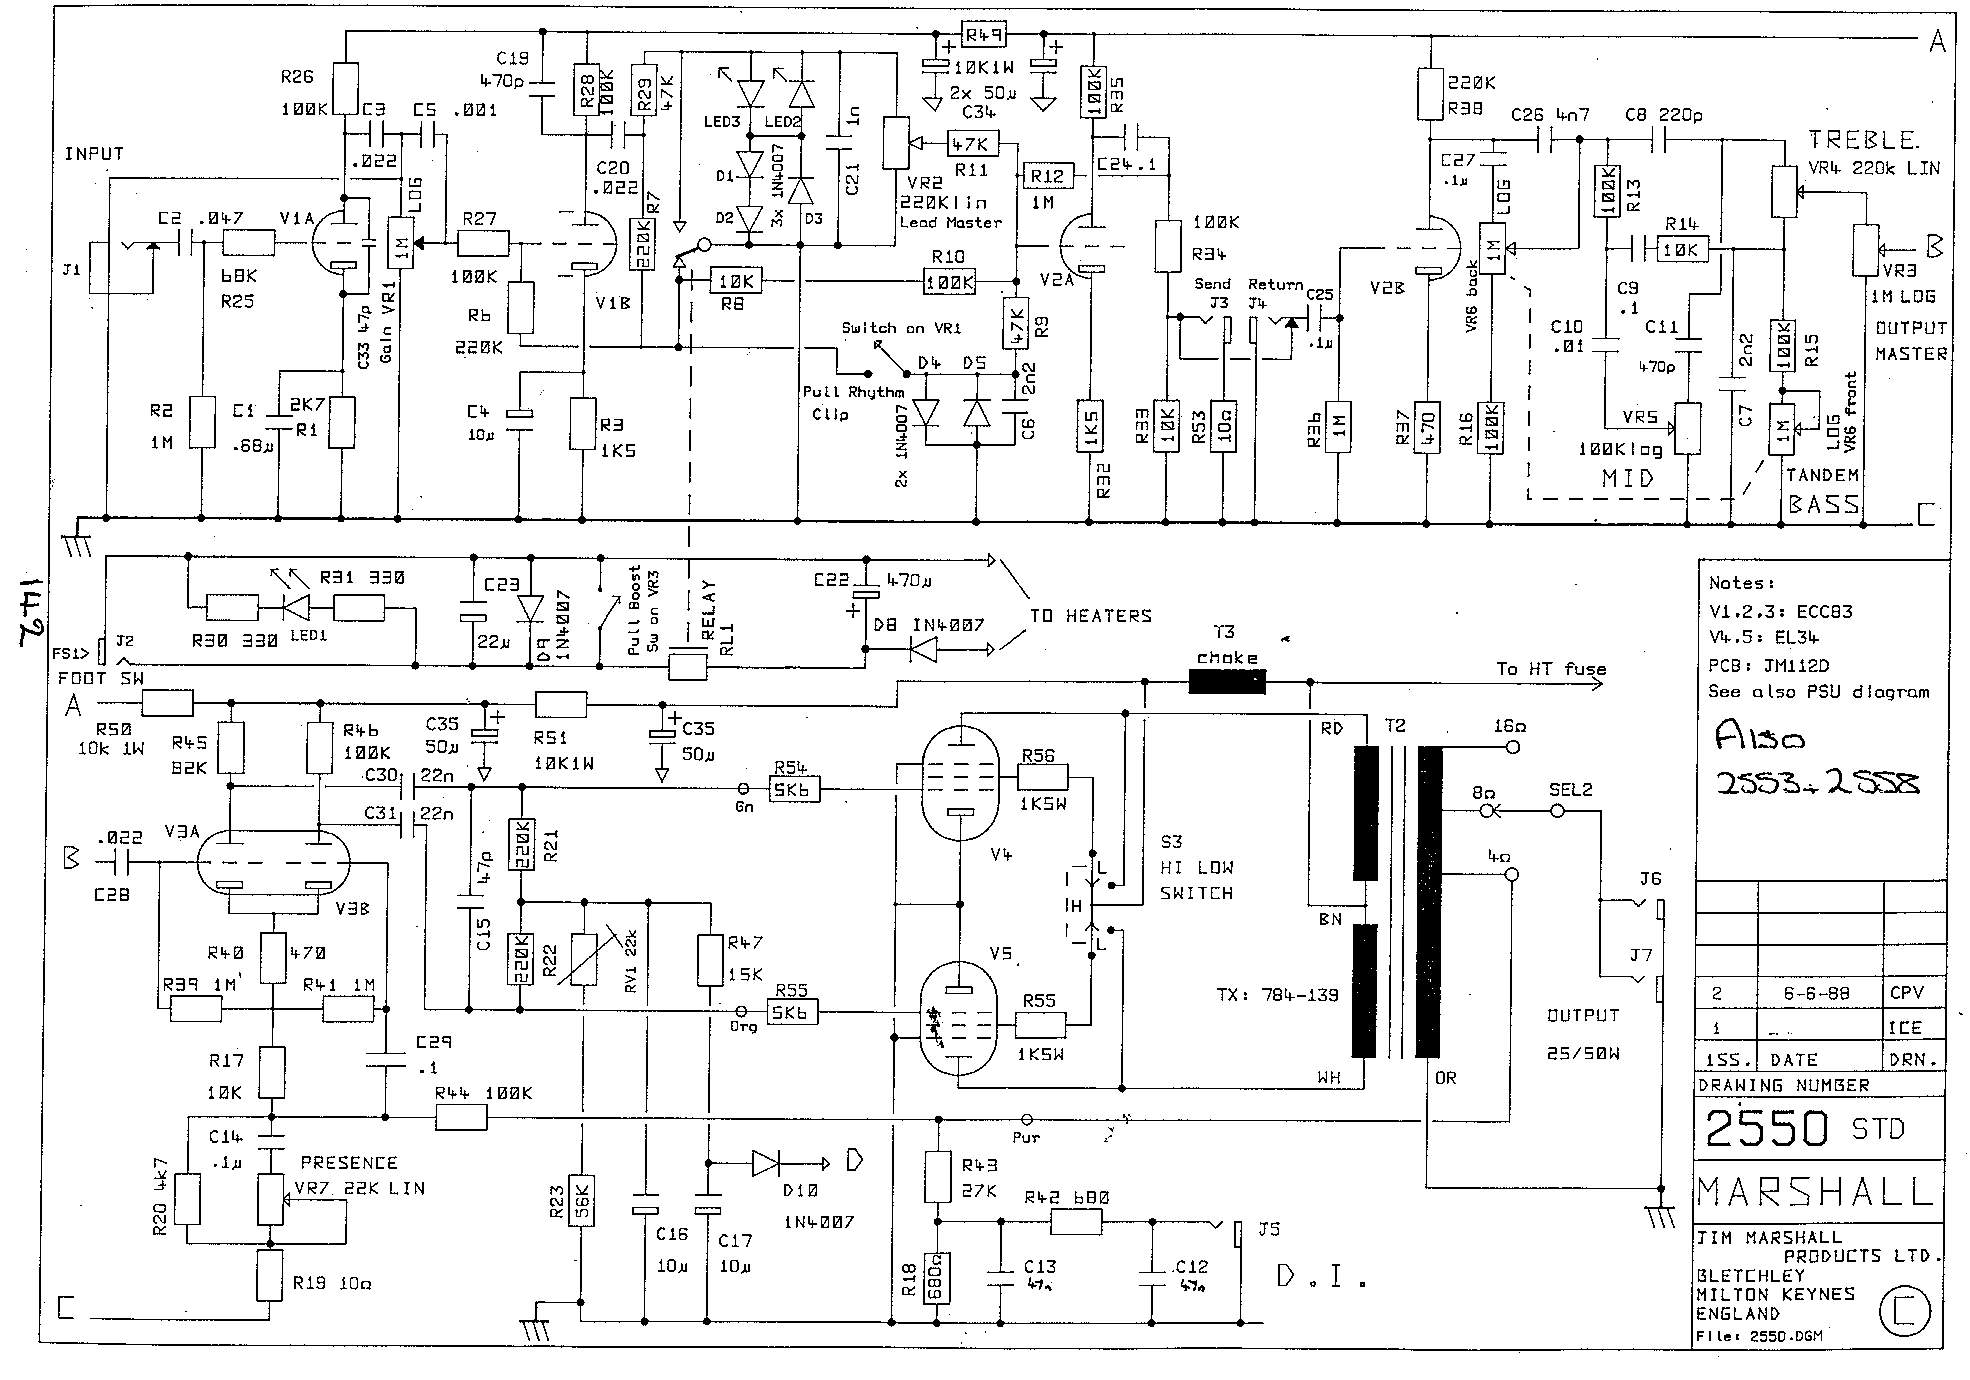 600 Amp Service Diagram